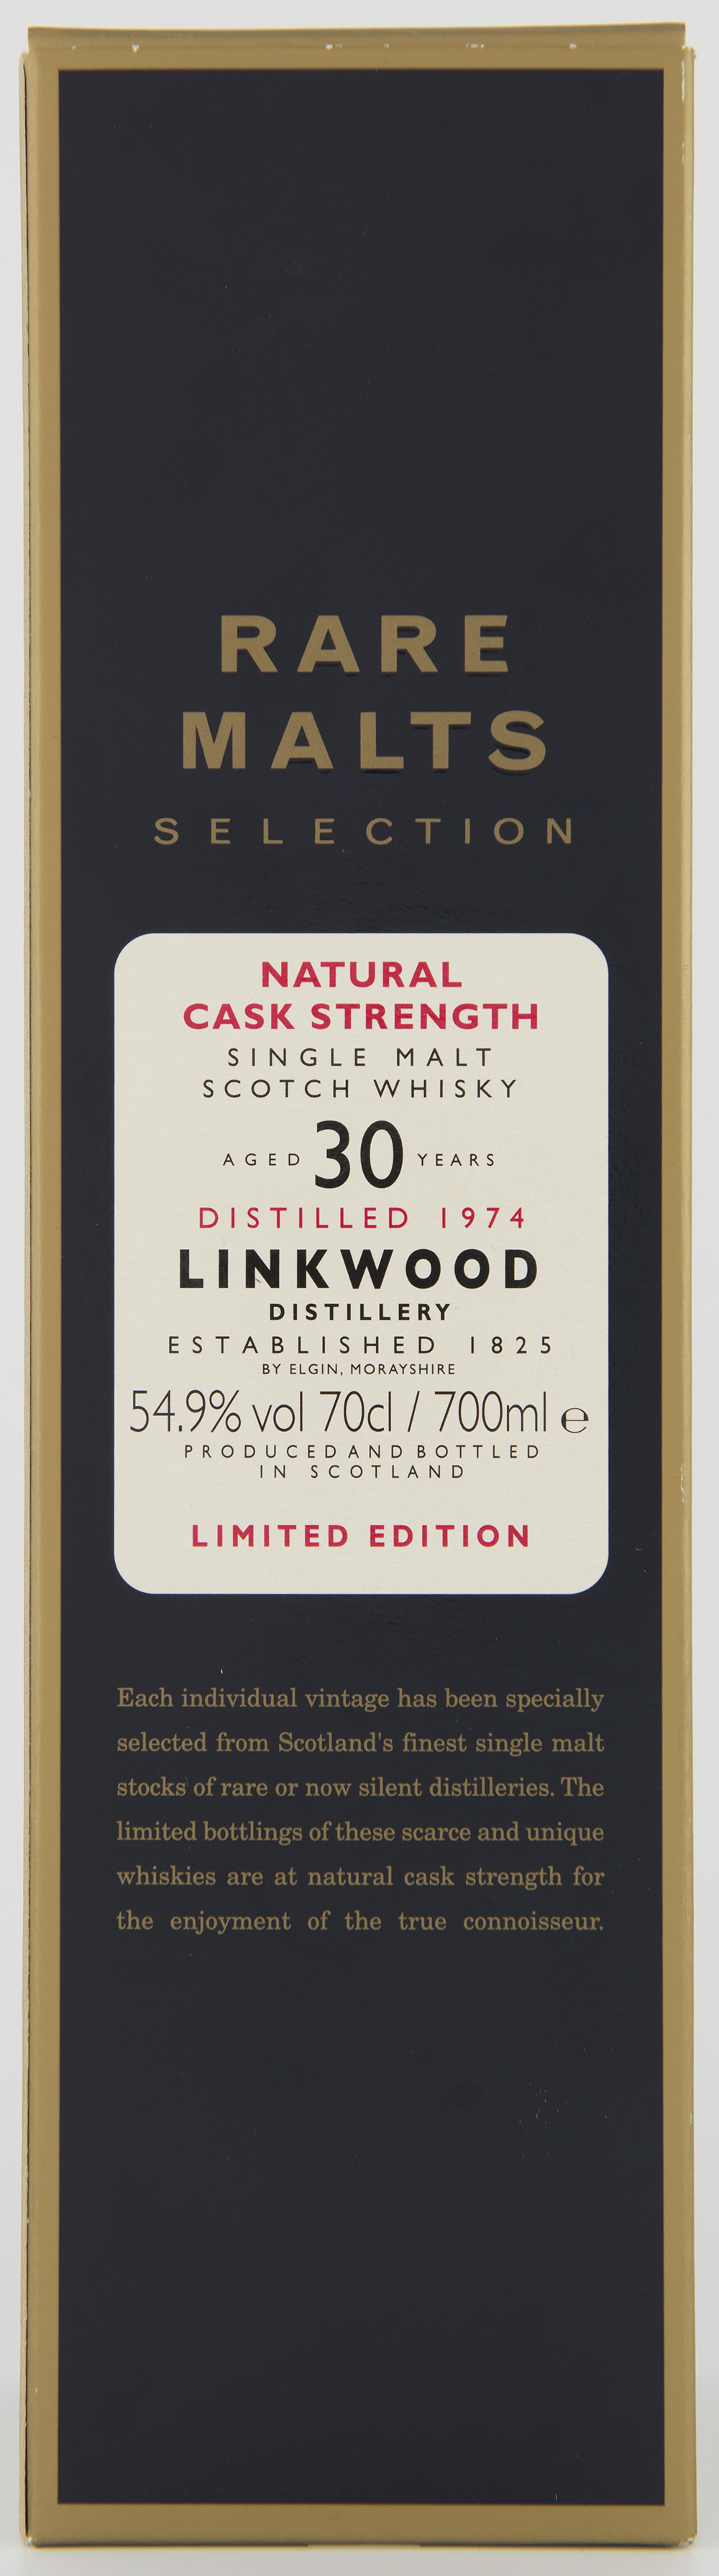 Billede: DSC_3355 Linkwood 30 - rare malts - box front.jpg